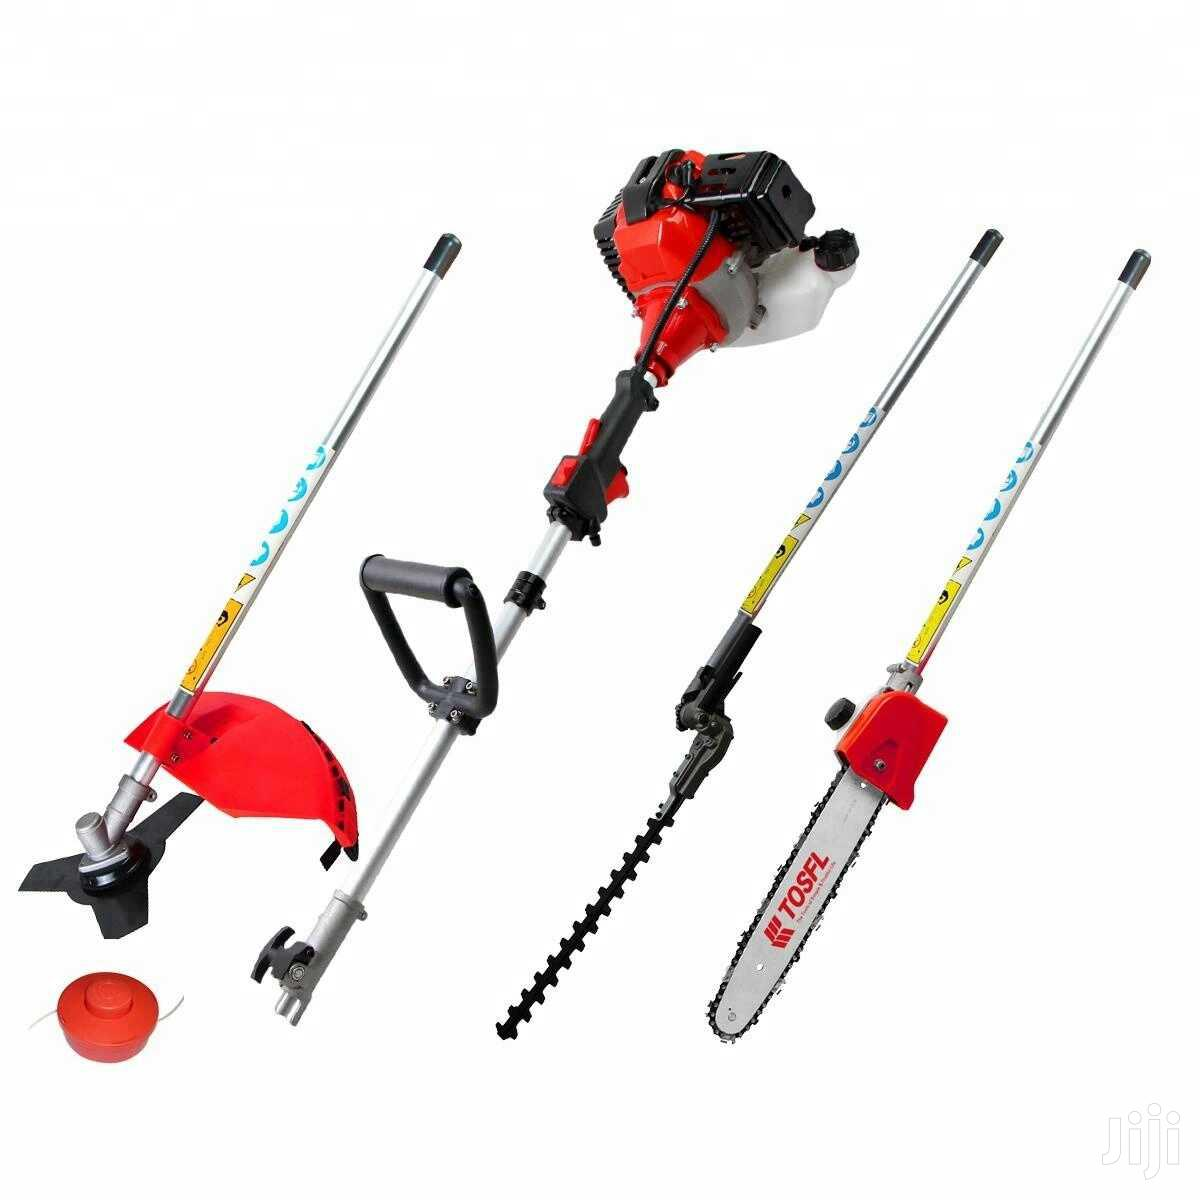 Grass Cutter,Chainsaw,Hedge Trimmer Etc(4 In 1)